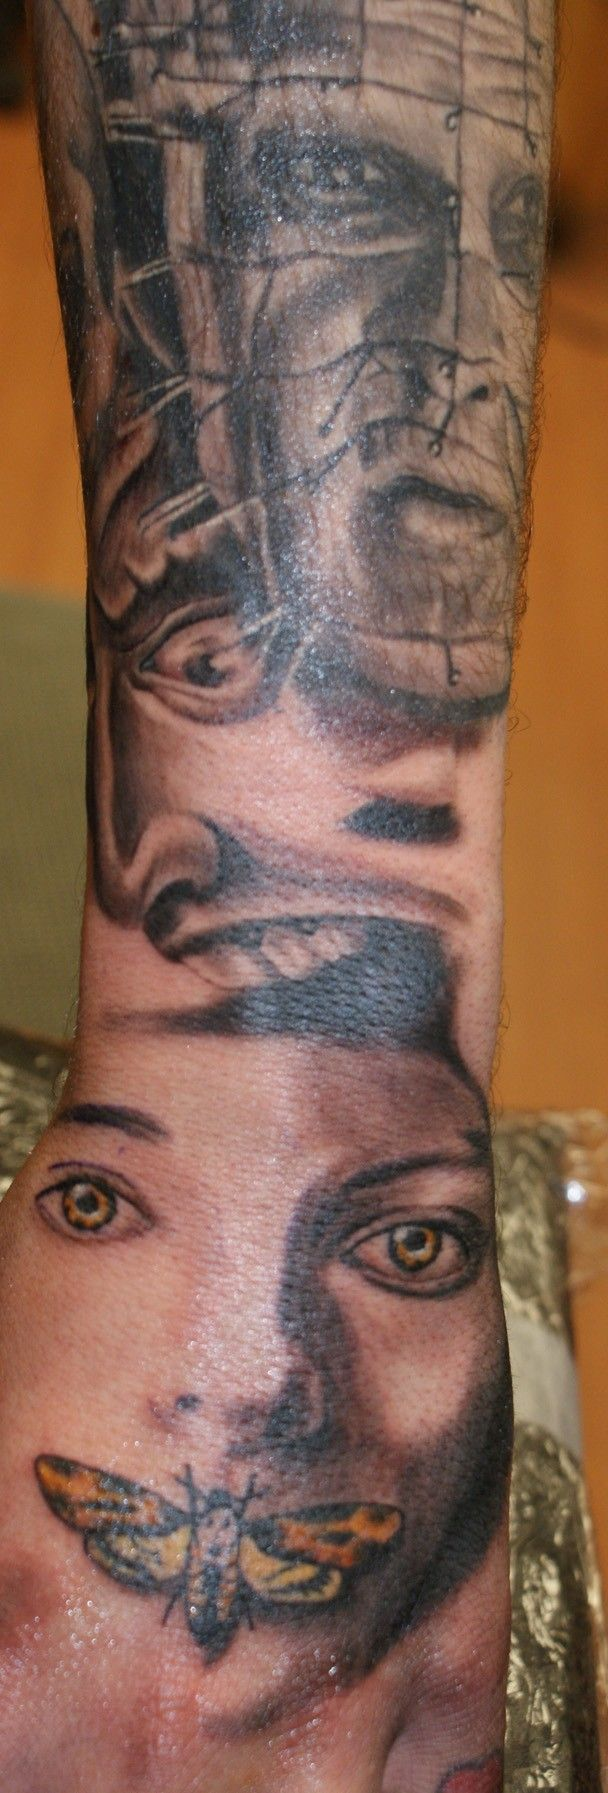 Silence Of The Lambs Portrait Best Portrait Tattoo Artist Ideas And Designs